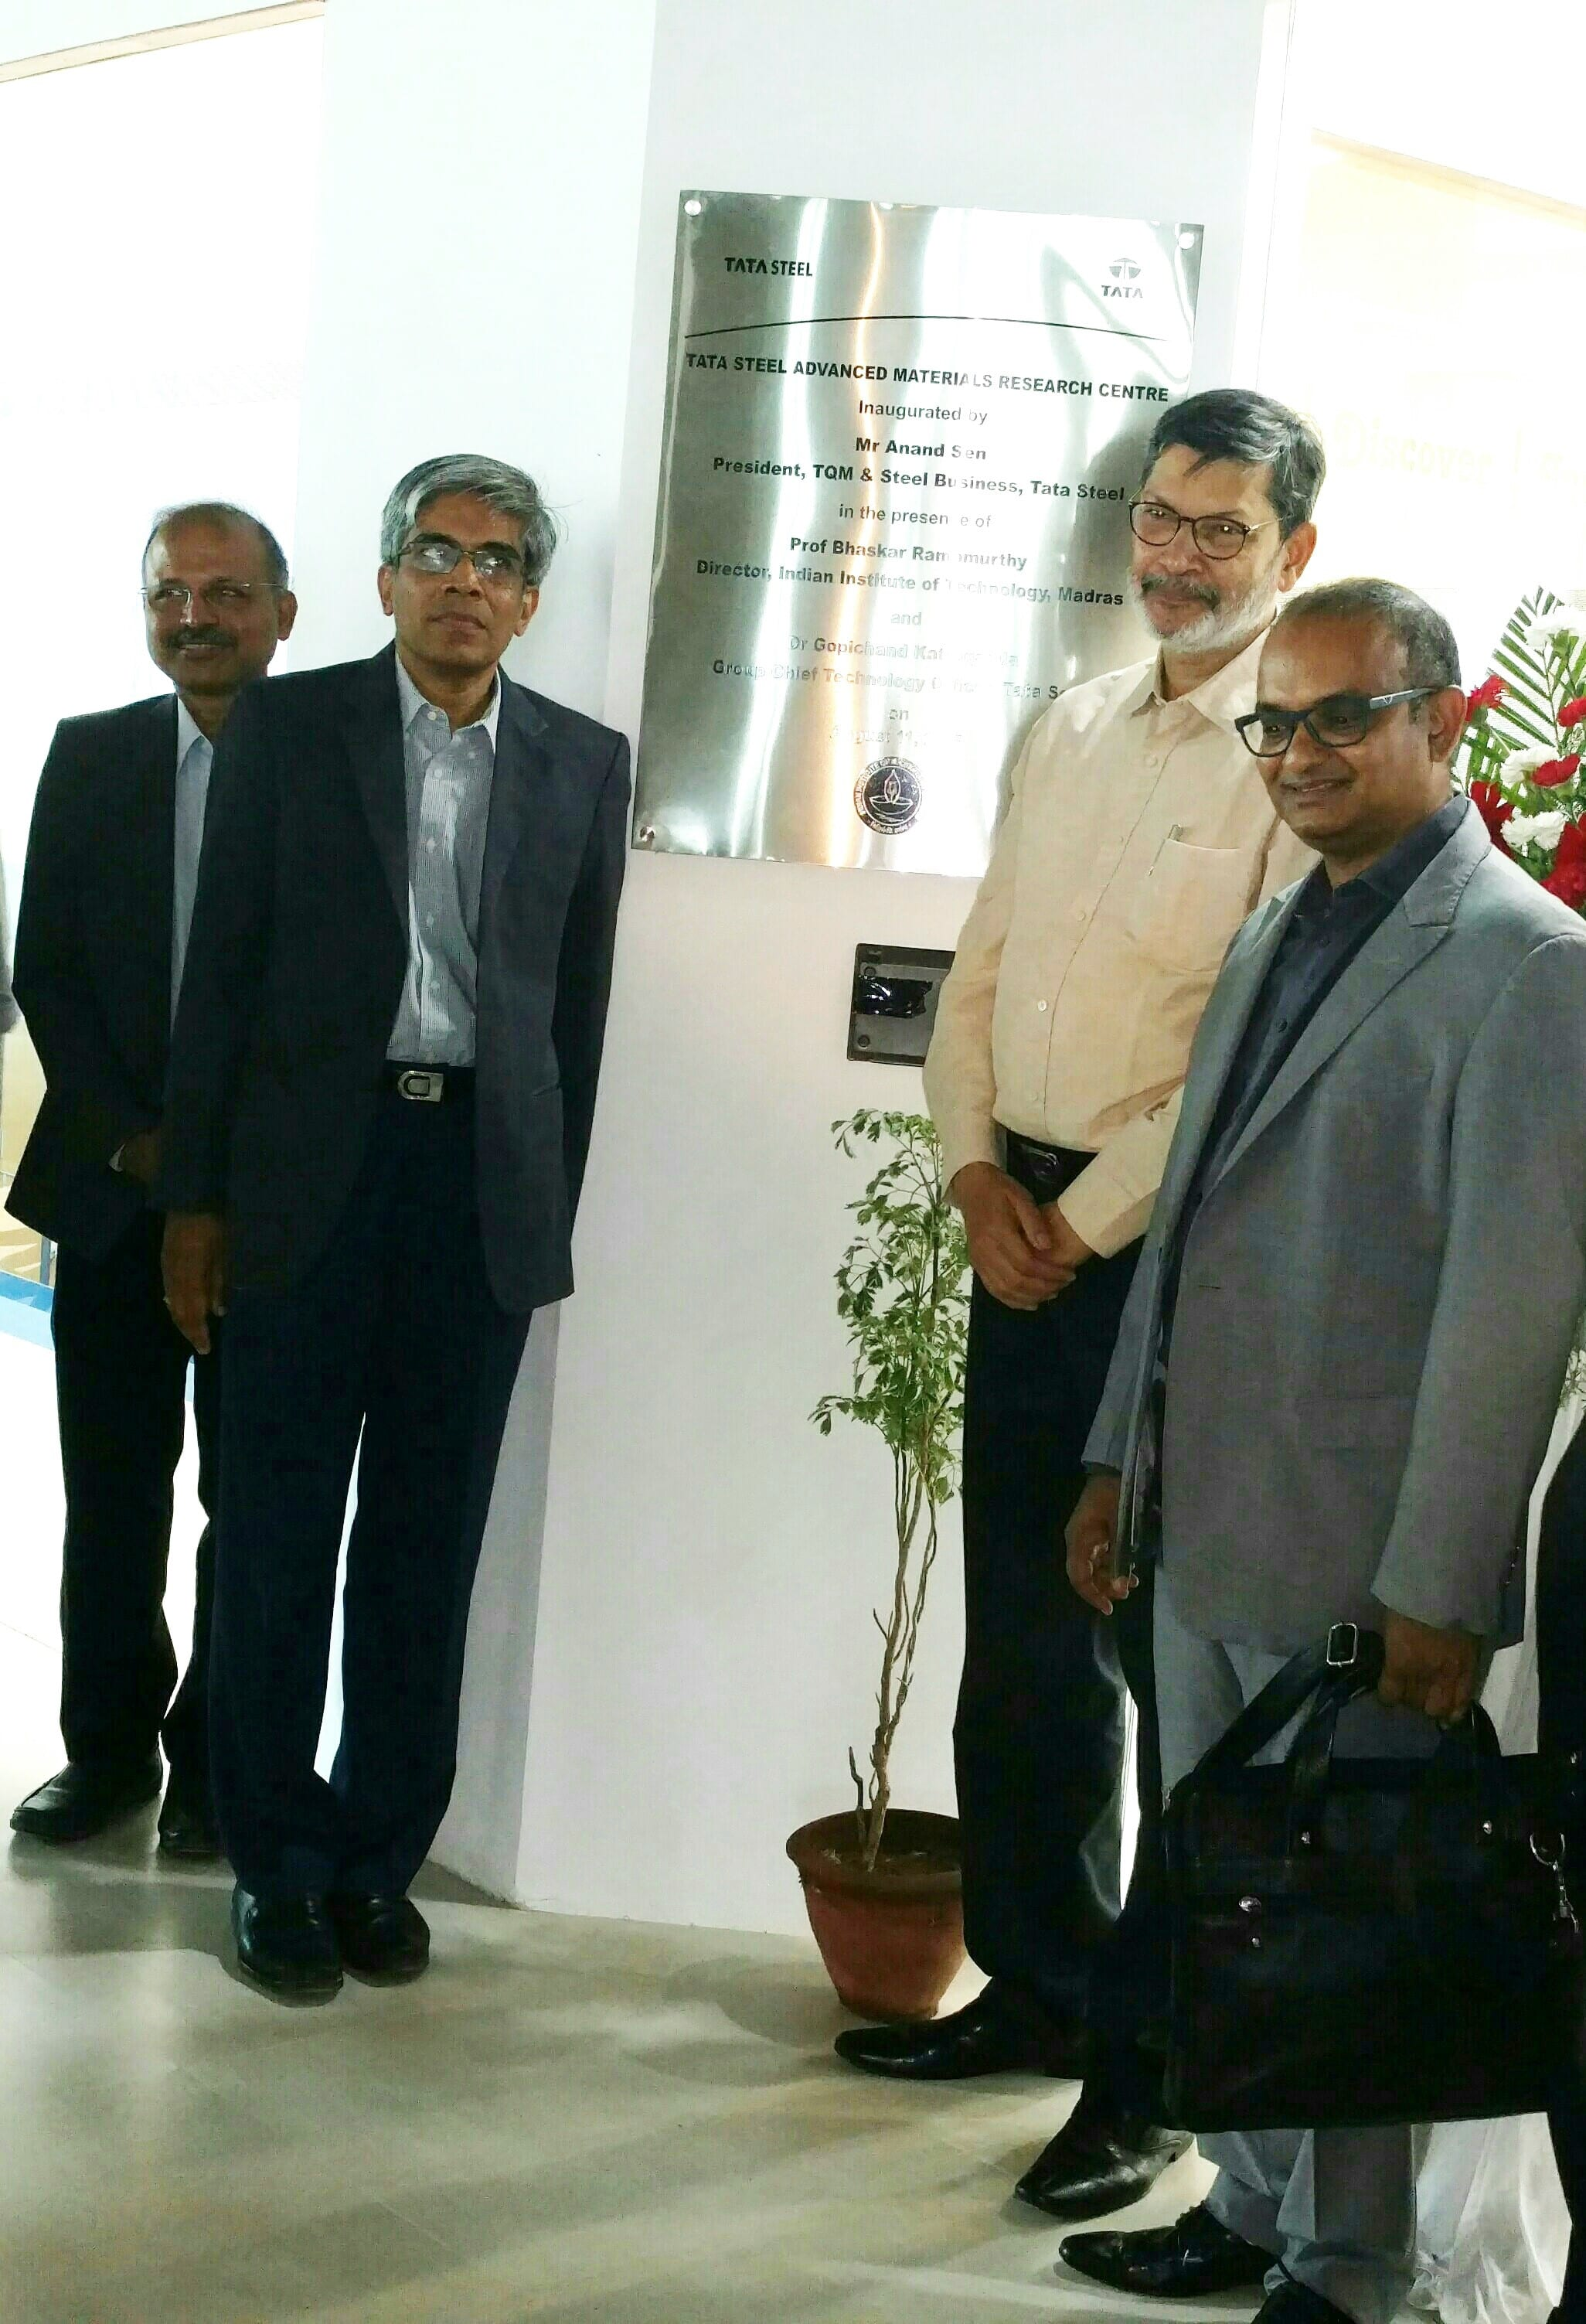 Tata Steel Advanced Materials Research Centre established at IIT Madras